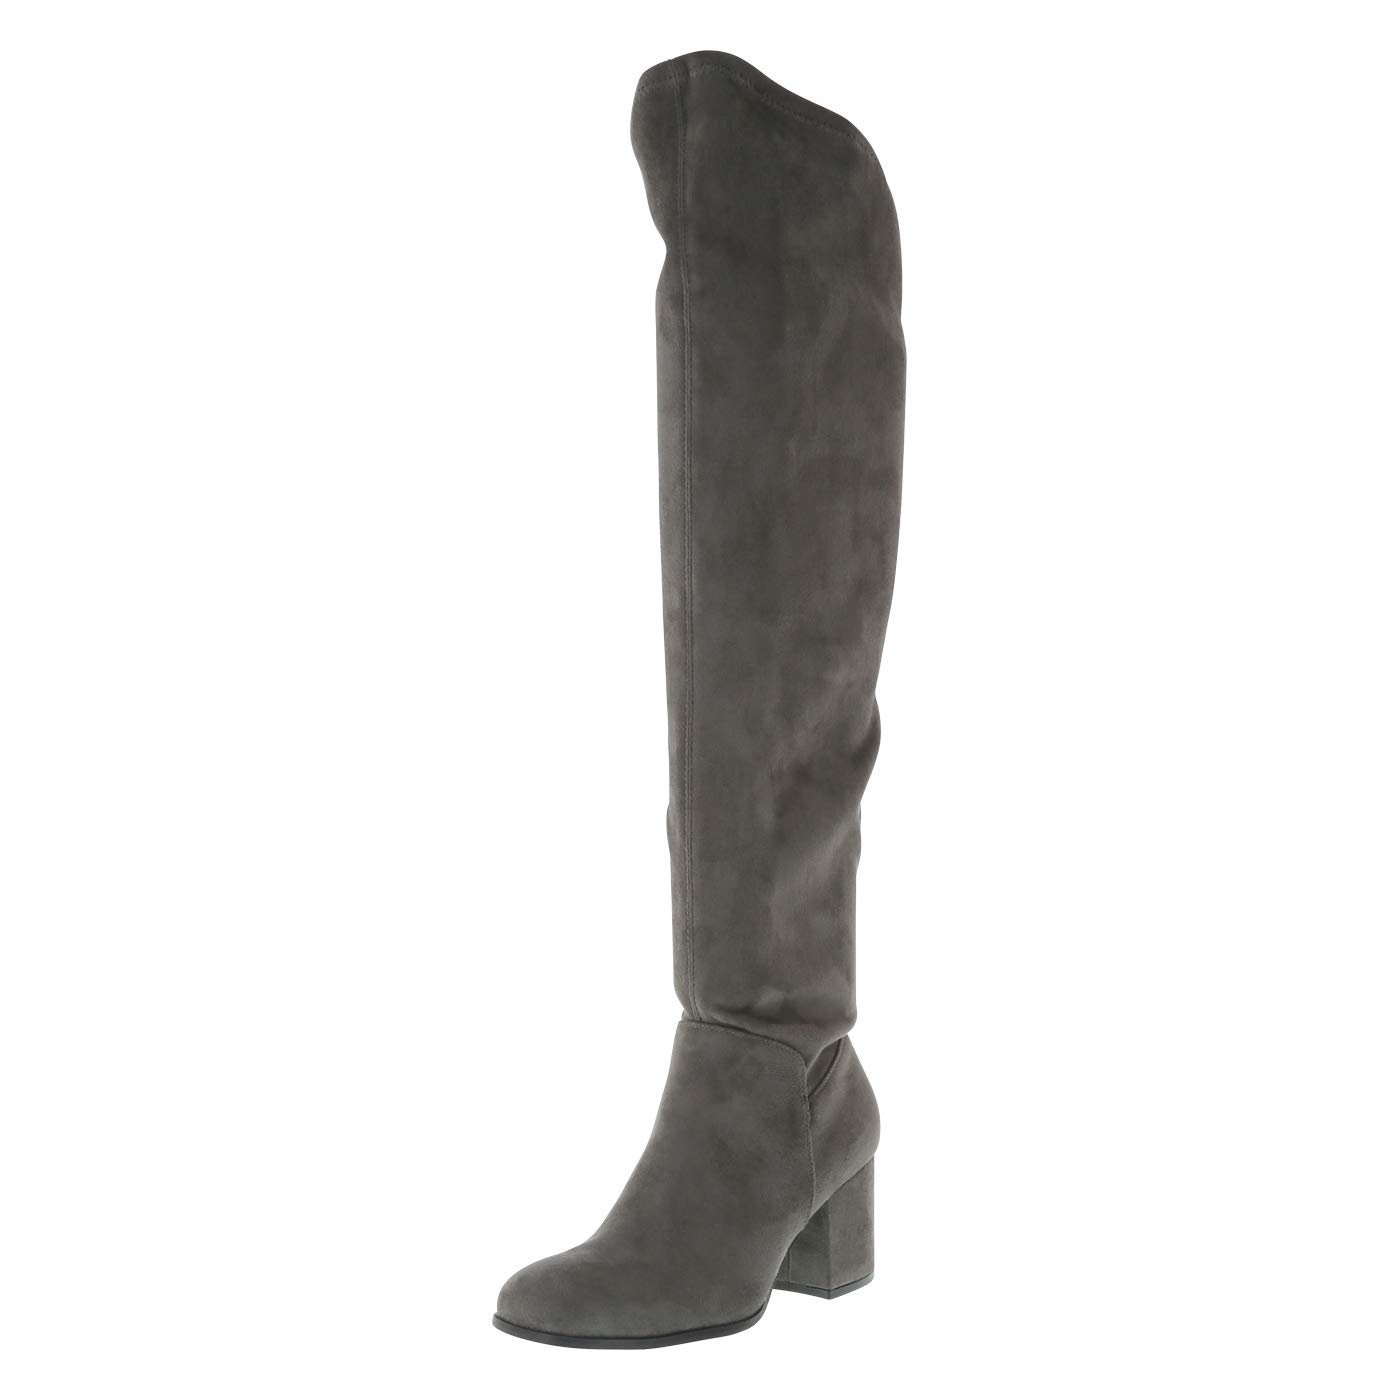 d7037474f0f Christian Siriano for Payless Charcoal Women s Samiya Over-The-Knee Boot  9.5 Regular